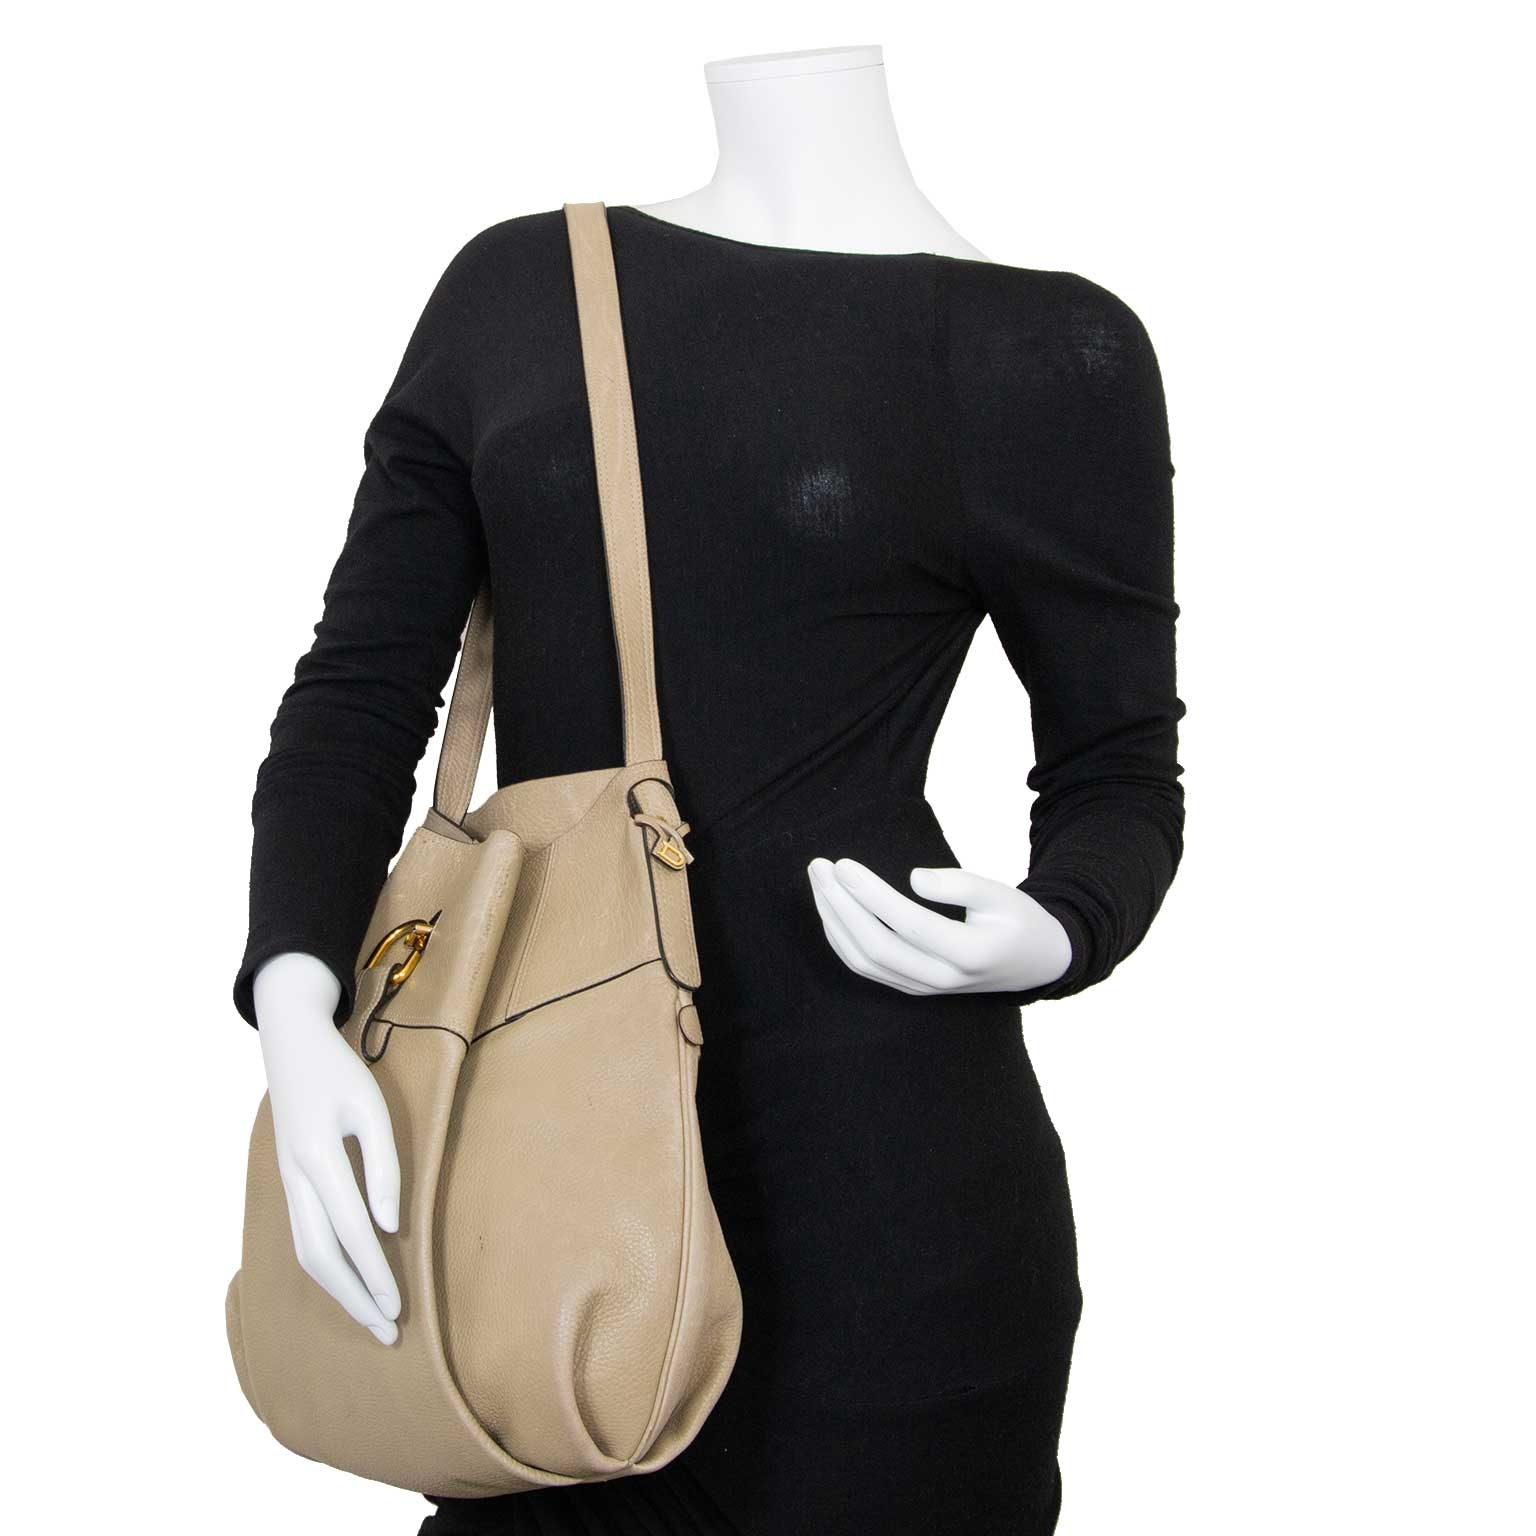 delvaux beige faust bag now for sale at labellov vintage fashion webshop belgium